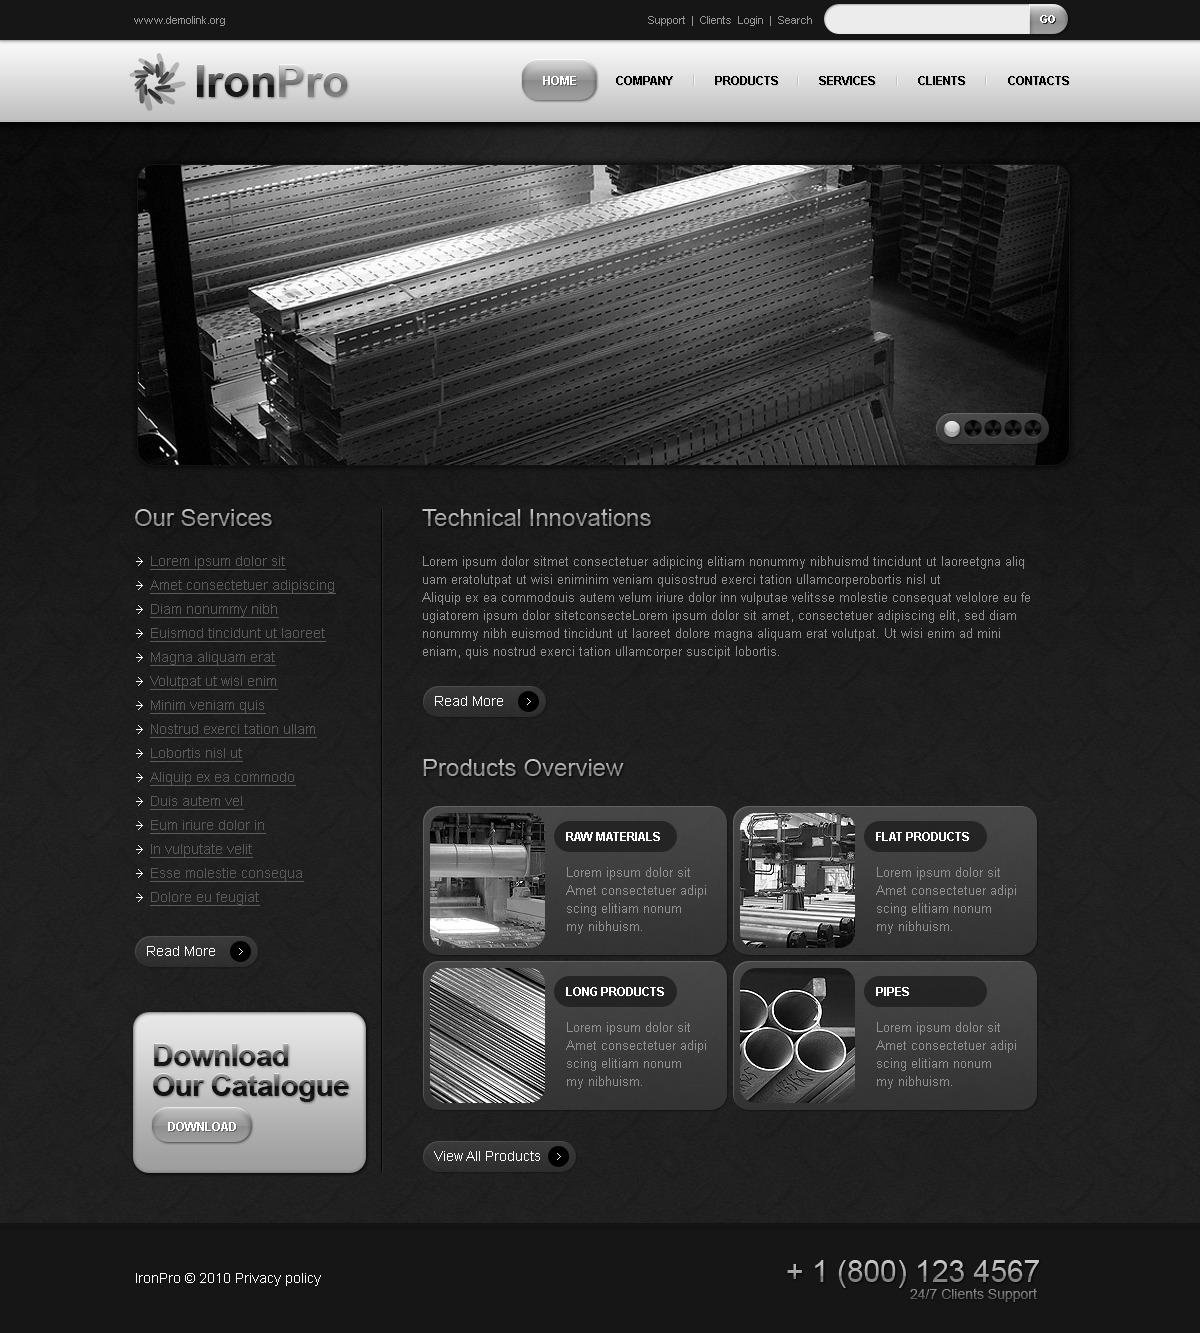 The Ironpro Steel PSD Design 54507, one of the best PSD templates of its kind (industrial, flash 8, wide), also known as ironpro steel PSD template, processing PSD template, welding company PSD template, industry PSD template, steel PSD template, workshop PSD template, business PSD template, modern facility PSD template, scarf PSD template, autogenous PSD template, oxy-acetylene PSD template, arc PSD template, staff PSD template, about PSD template, us PSD template, products PSD template, contacts PSD template, industry PSD template, pick PSD template, process PSD template, quality PSD template, construction PSD template, excellent PSD template, aftercare PSD template, service PSD template, delivery PSD template, time PSD template, work PSD template, job  su and related with ironpro steel, processing, welding company, industry, steel, workshop, business, modern facility, scarf, autogenous, oxy-acetylene, arc, staff, about, us, products, contacts, industry, pick, process, quality, construction, excellent, aftercare, service, delivery, time, work, job  su, etc.